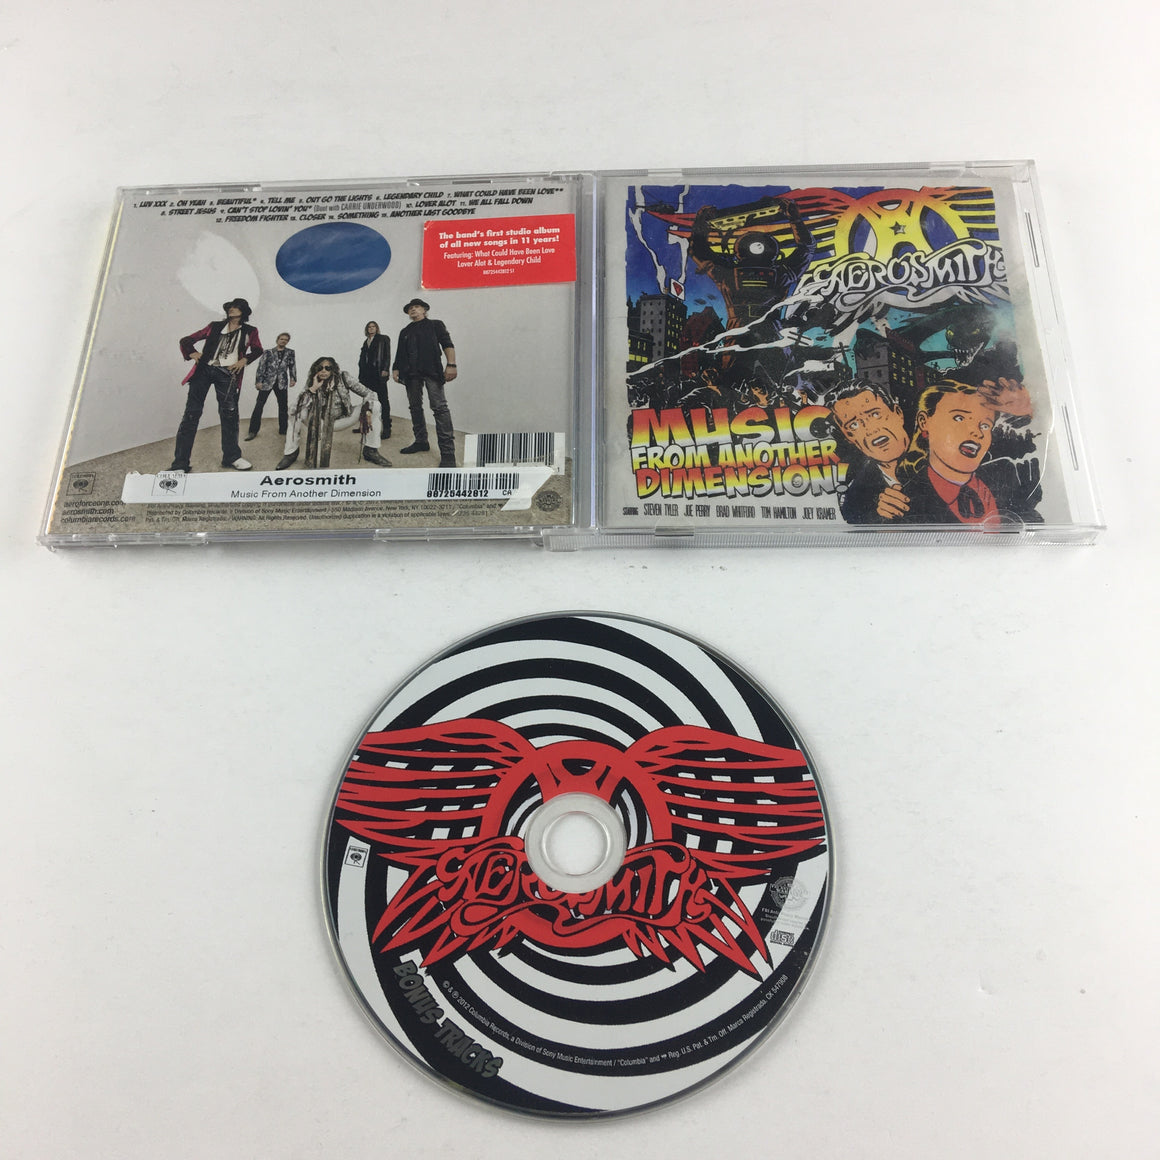 Aerosmith Music From Another Dimension! Used CD VG+ 88725 44281 2